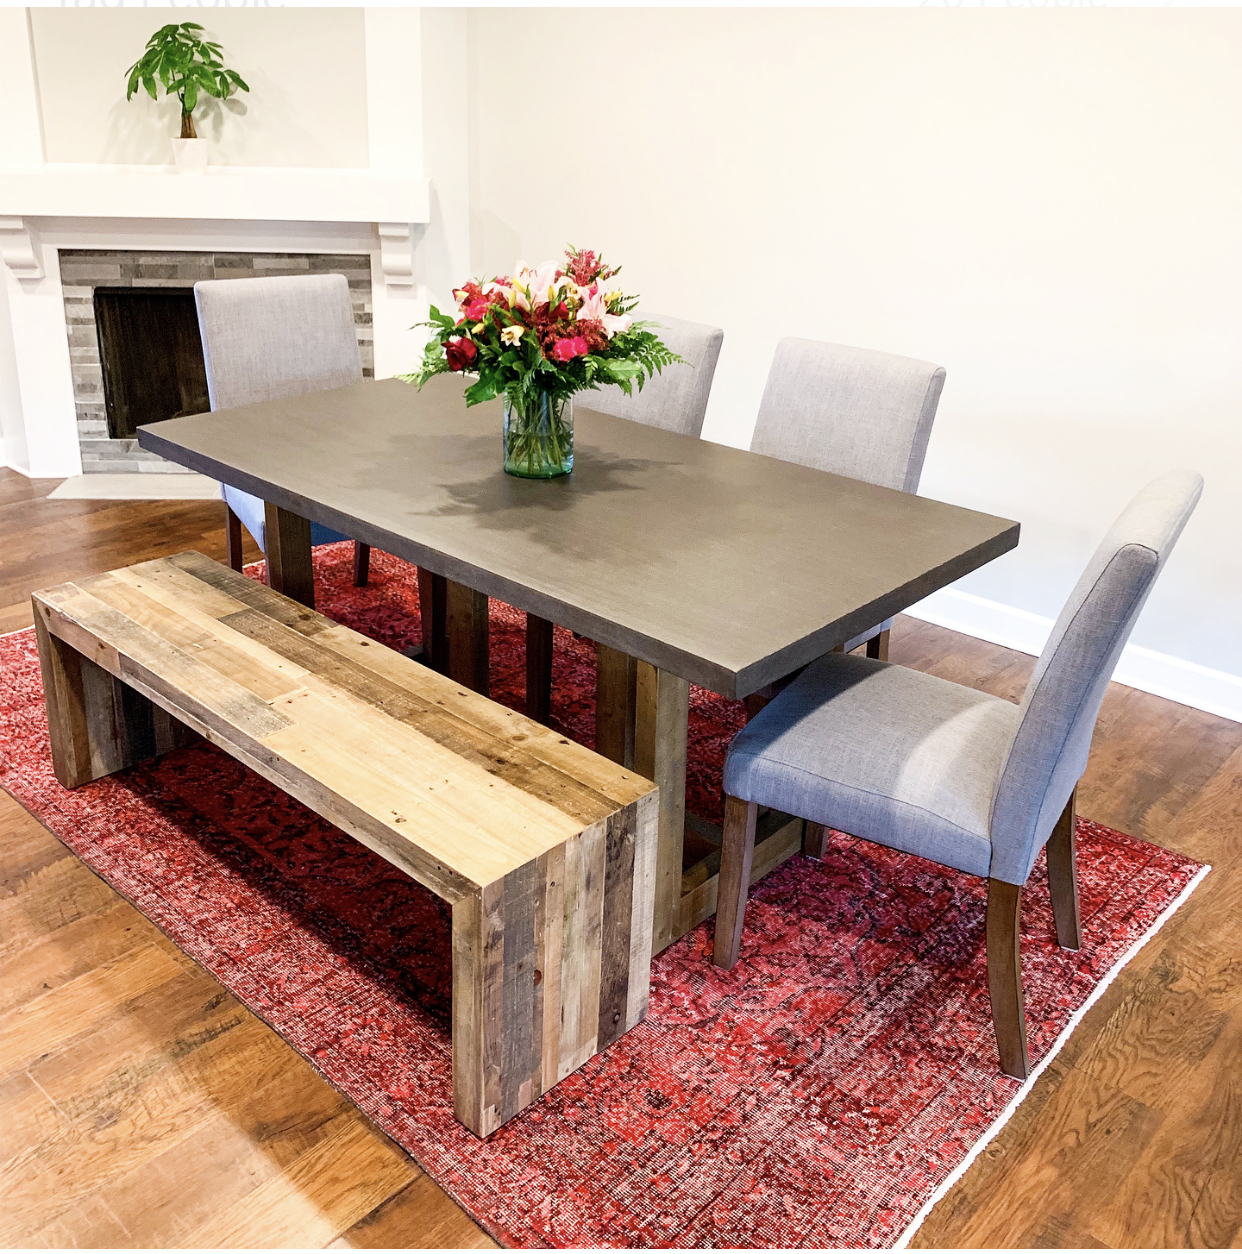 Our Dining Room Breakdown:  Rug:   Revival Rug Vintage Hand Woven & Knotted    Chairs:   Gray Dorel Living Harlem Parsons Chair    Table:   West Elm Emmerson Reclaimed Wood    Bench:   West Elm Emmerson Dining Bench    Flowers:   Fresh 1-800 Flowers Artisan Selection